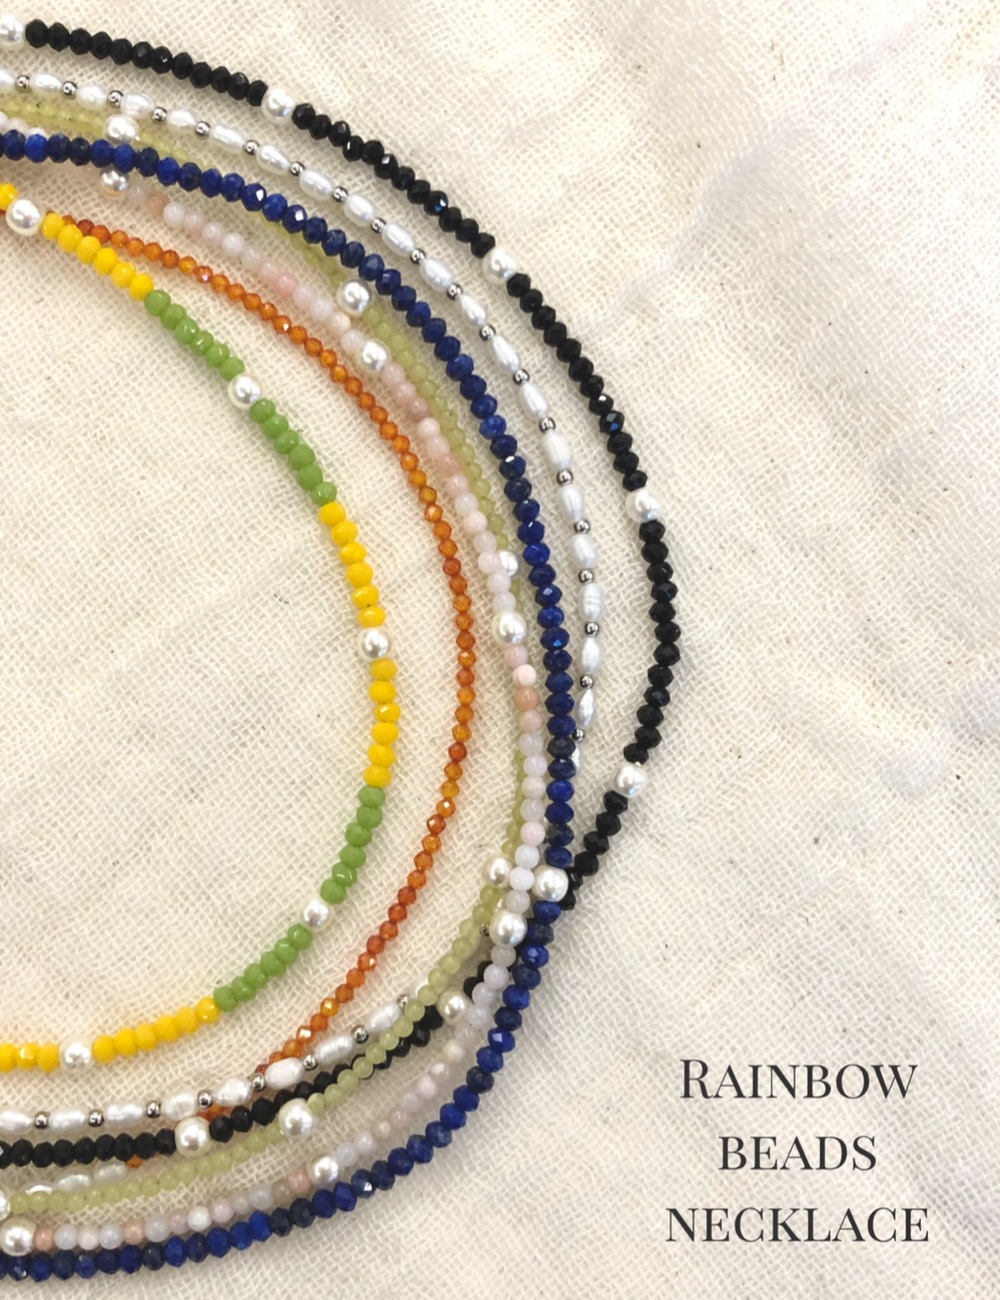 Rainbow beads necklace